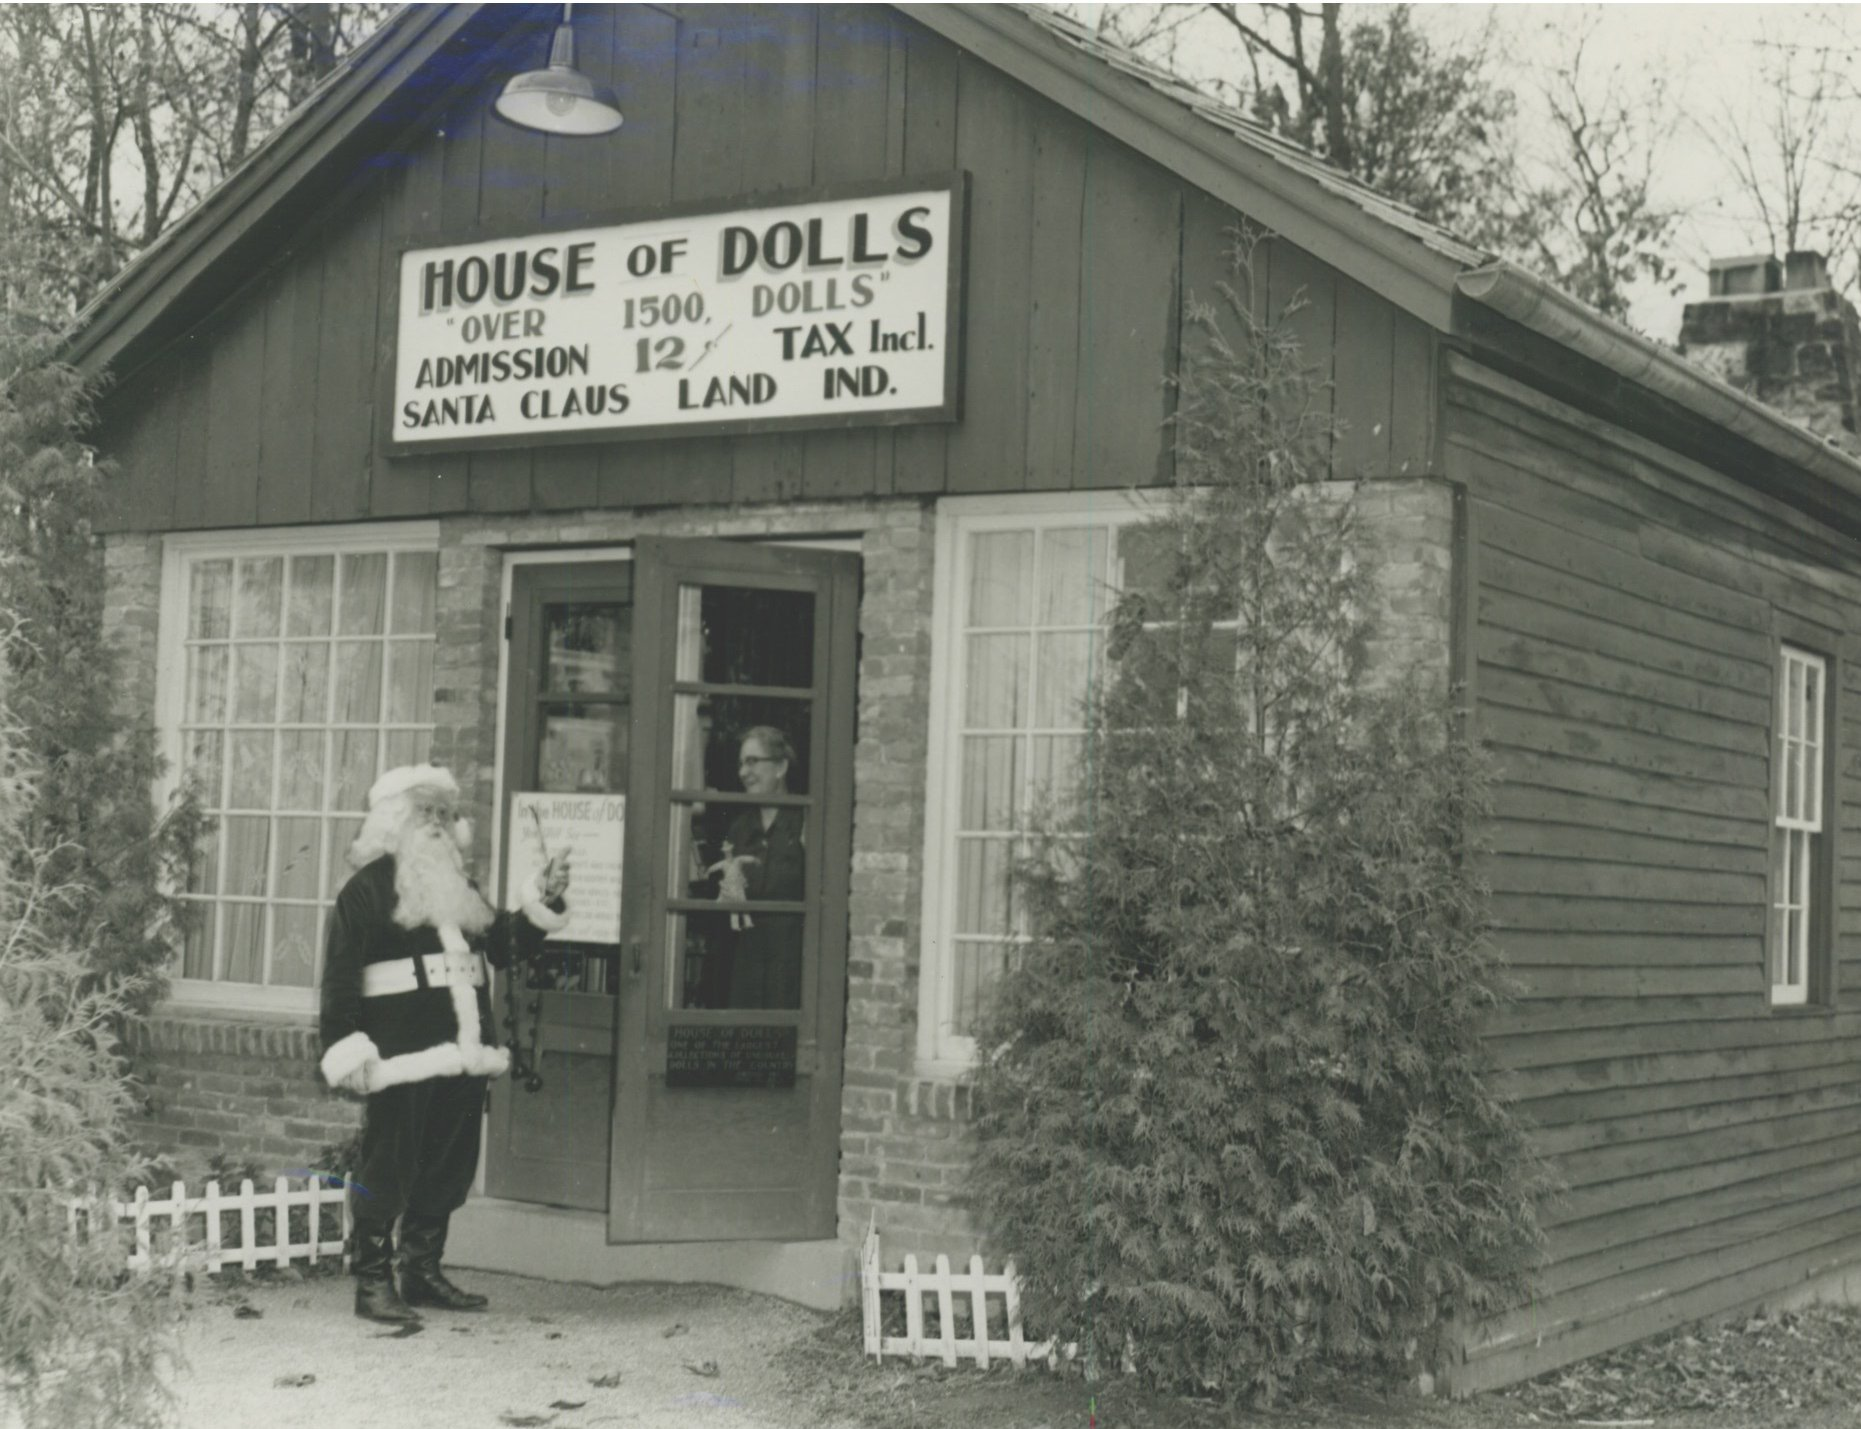 The original Santa Claus Post Office